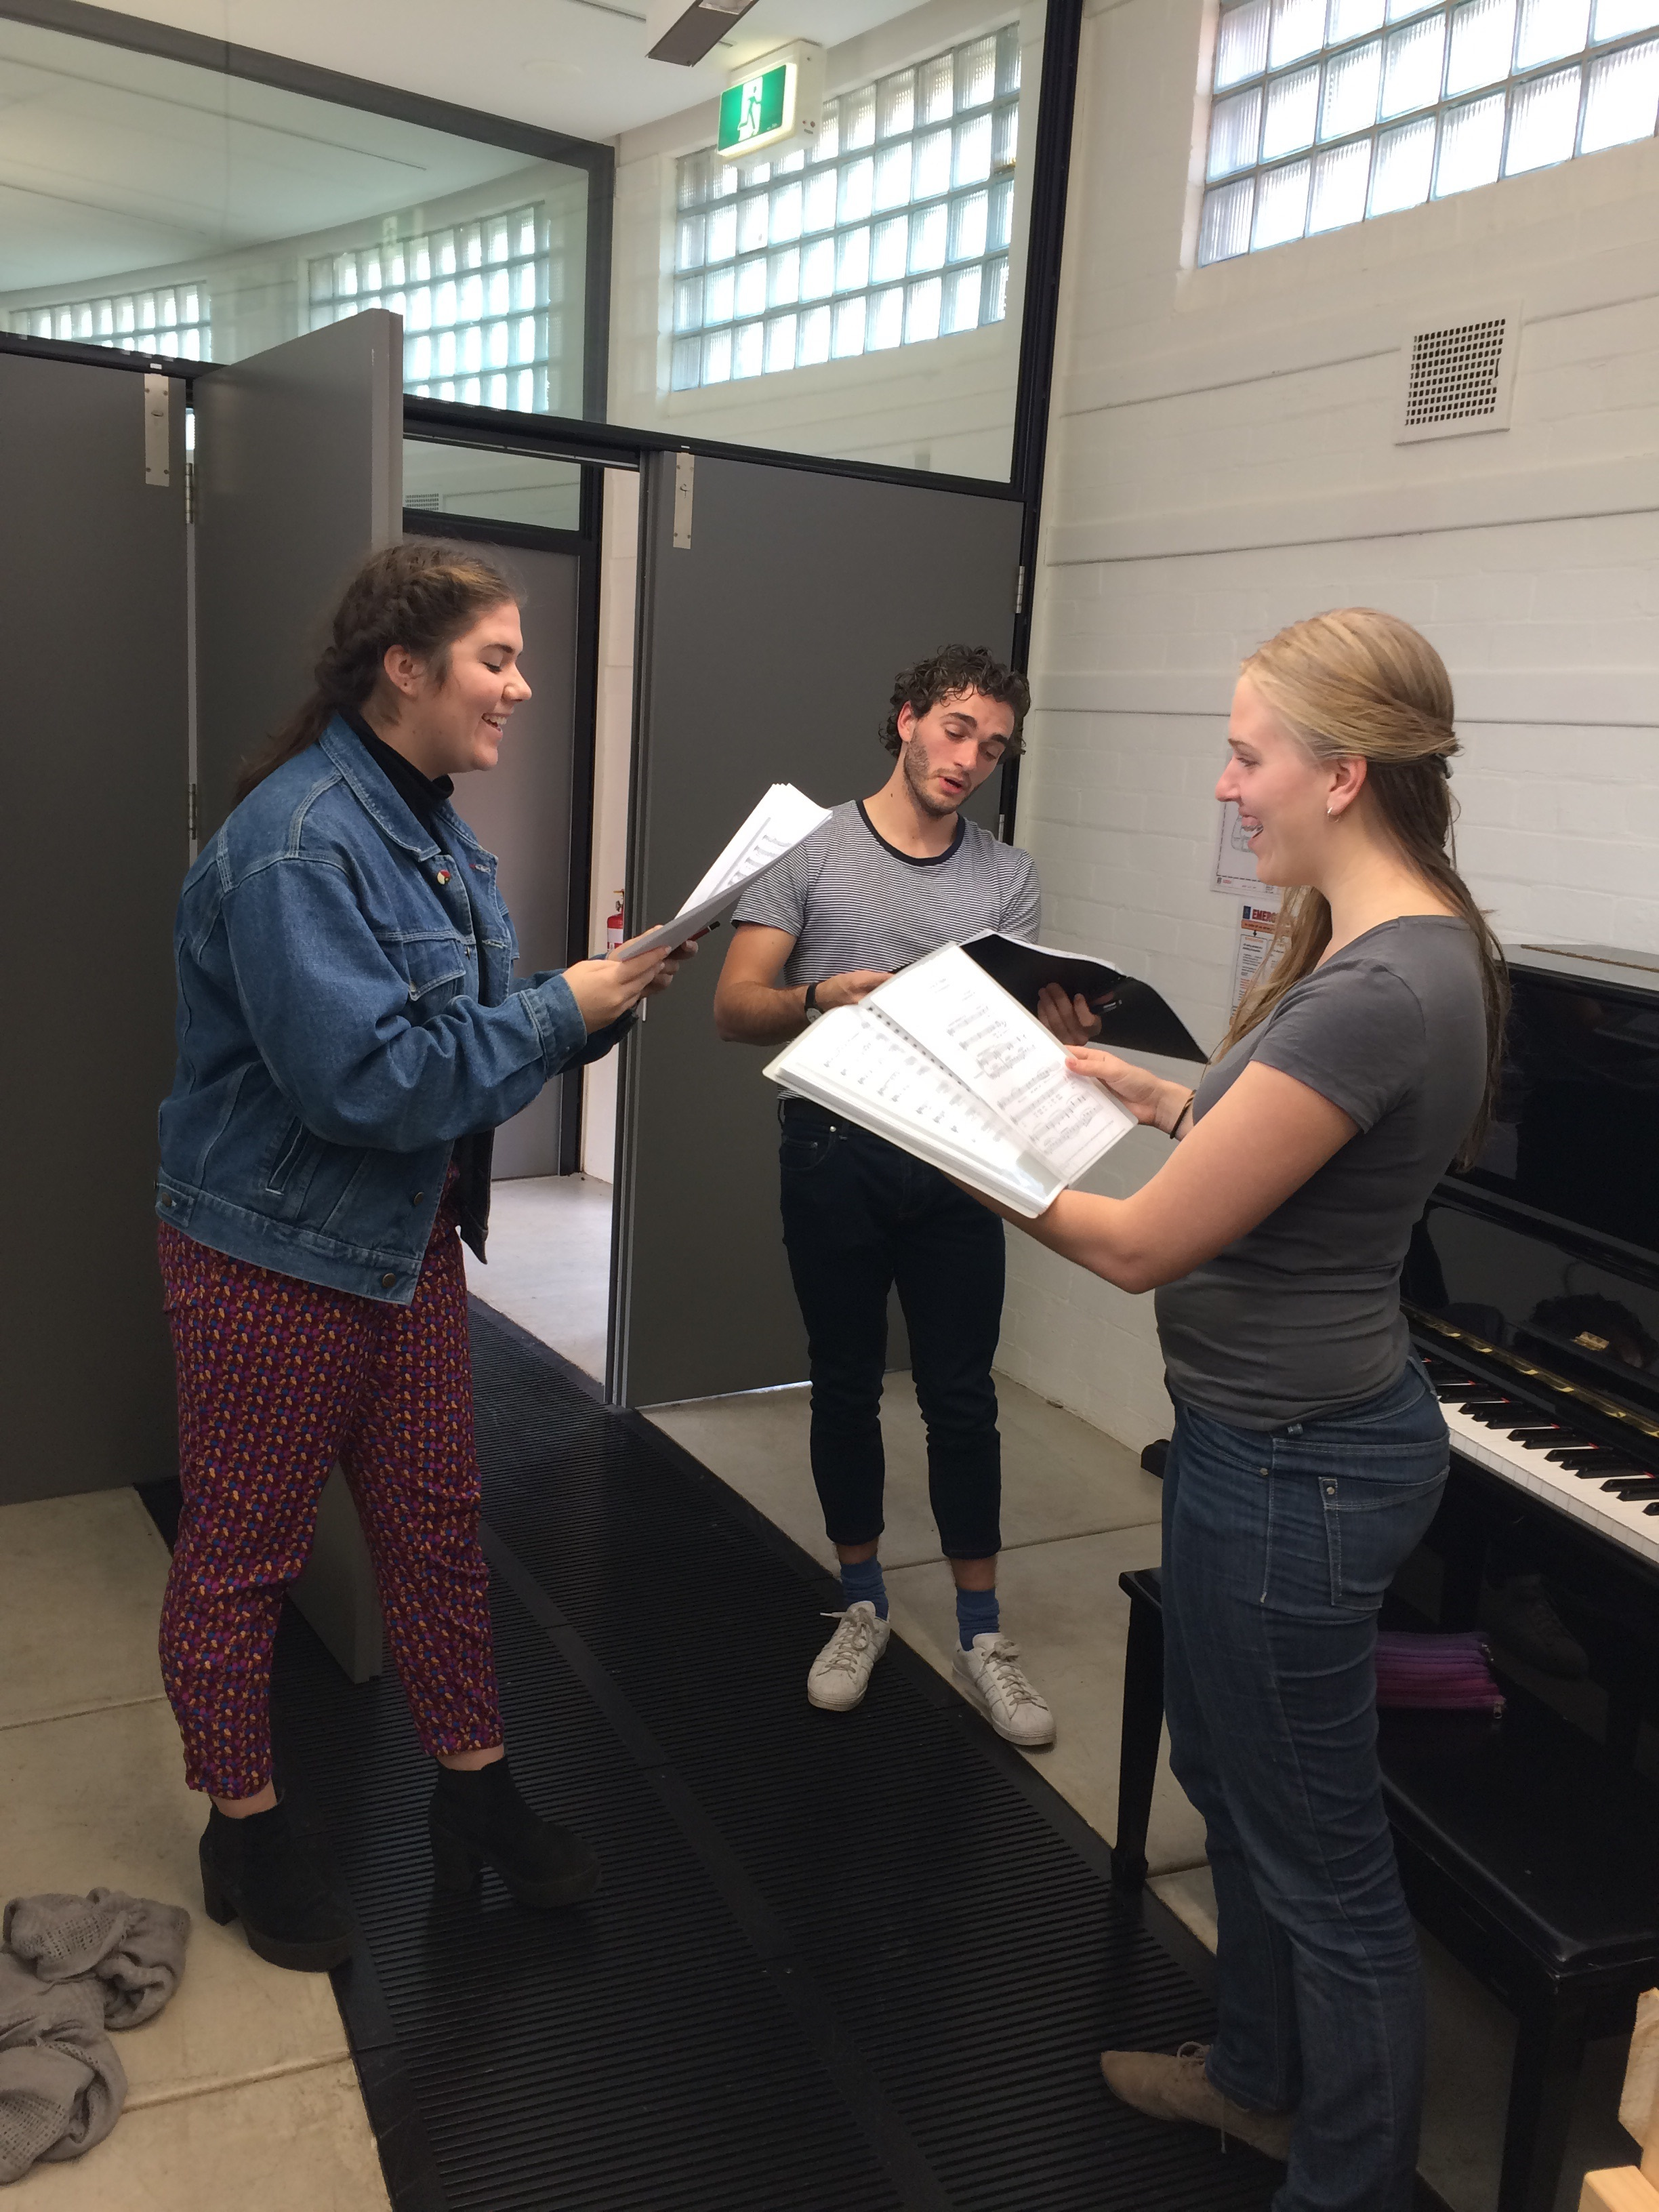 Vocal students rehearsing in the Grainger Museum